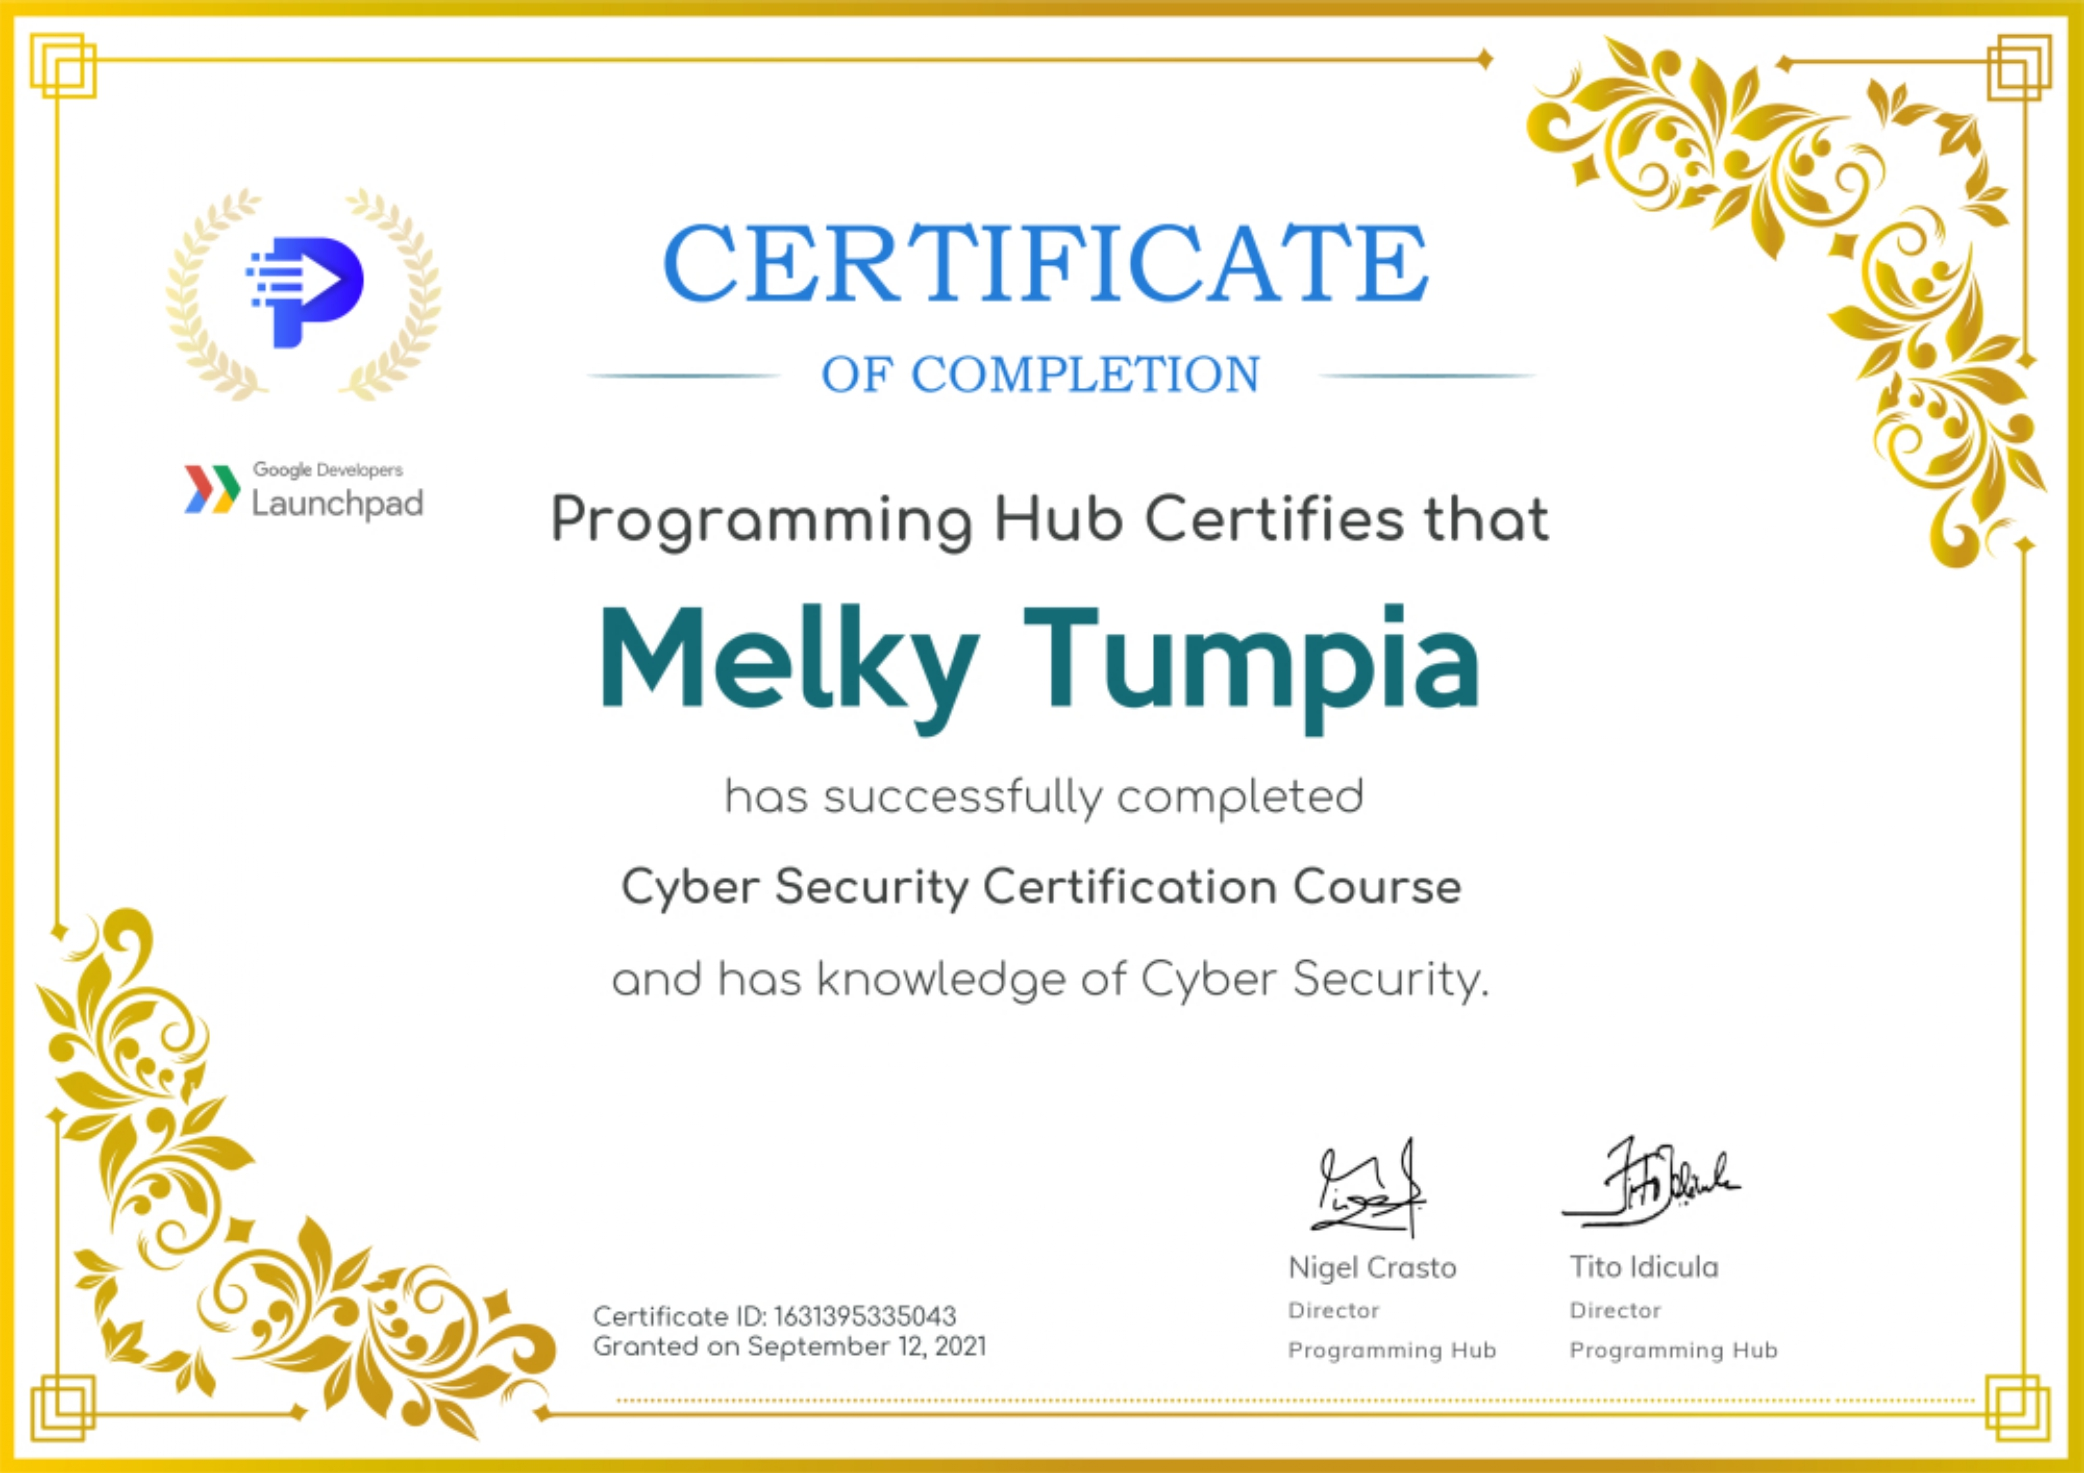 Cybersecurity Certification Course by Google Developers Launchpad and ProgrammingHub